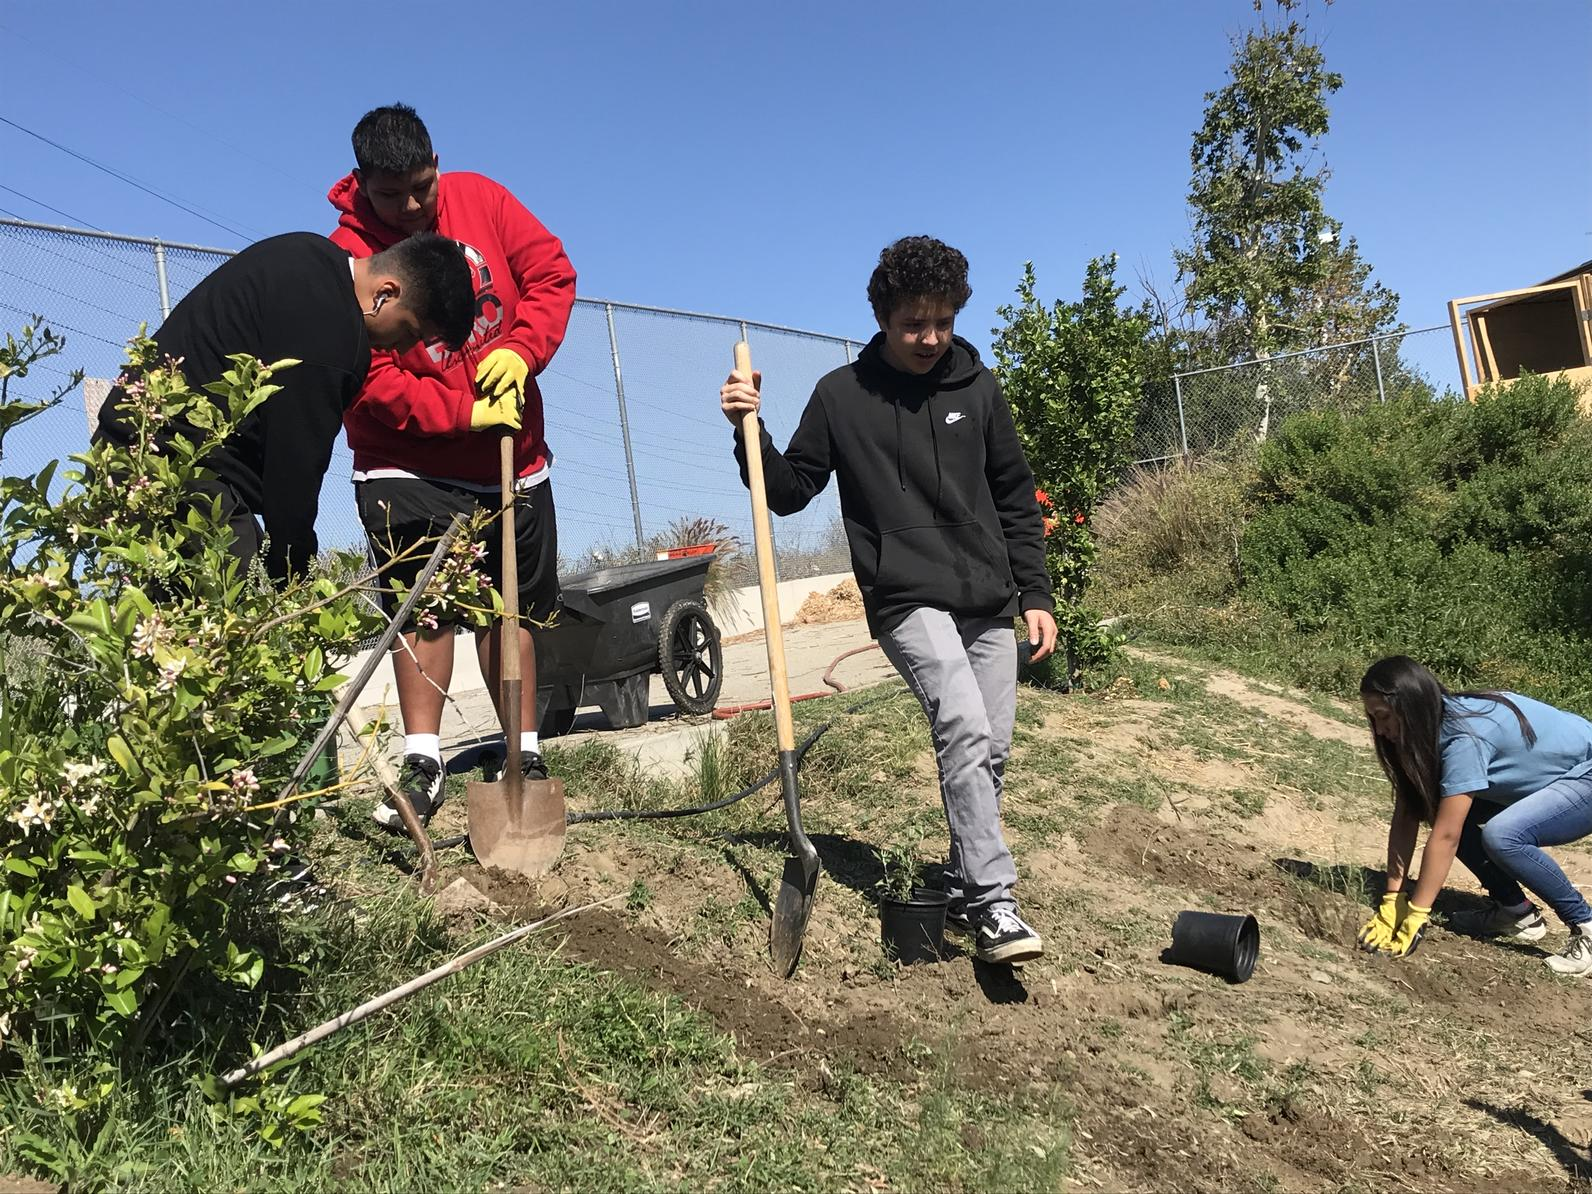 Students at Sotomayor Learning Academy work on creating bird-friendly habitat at their school.